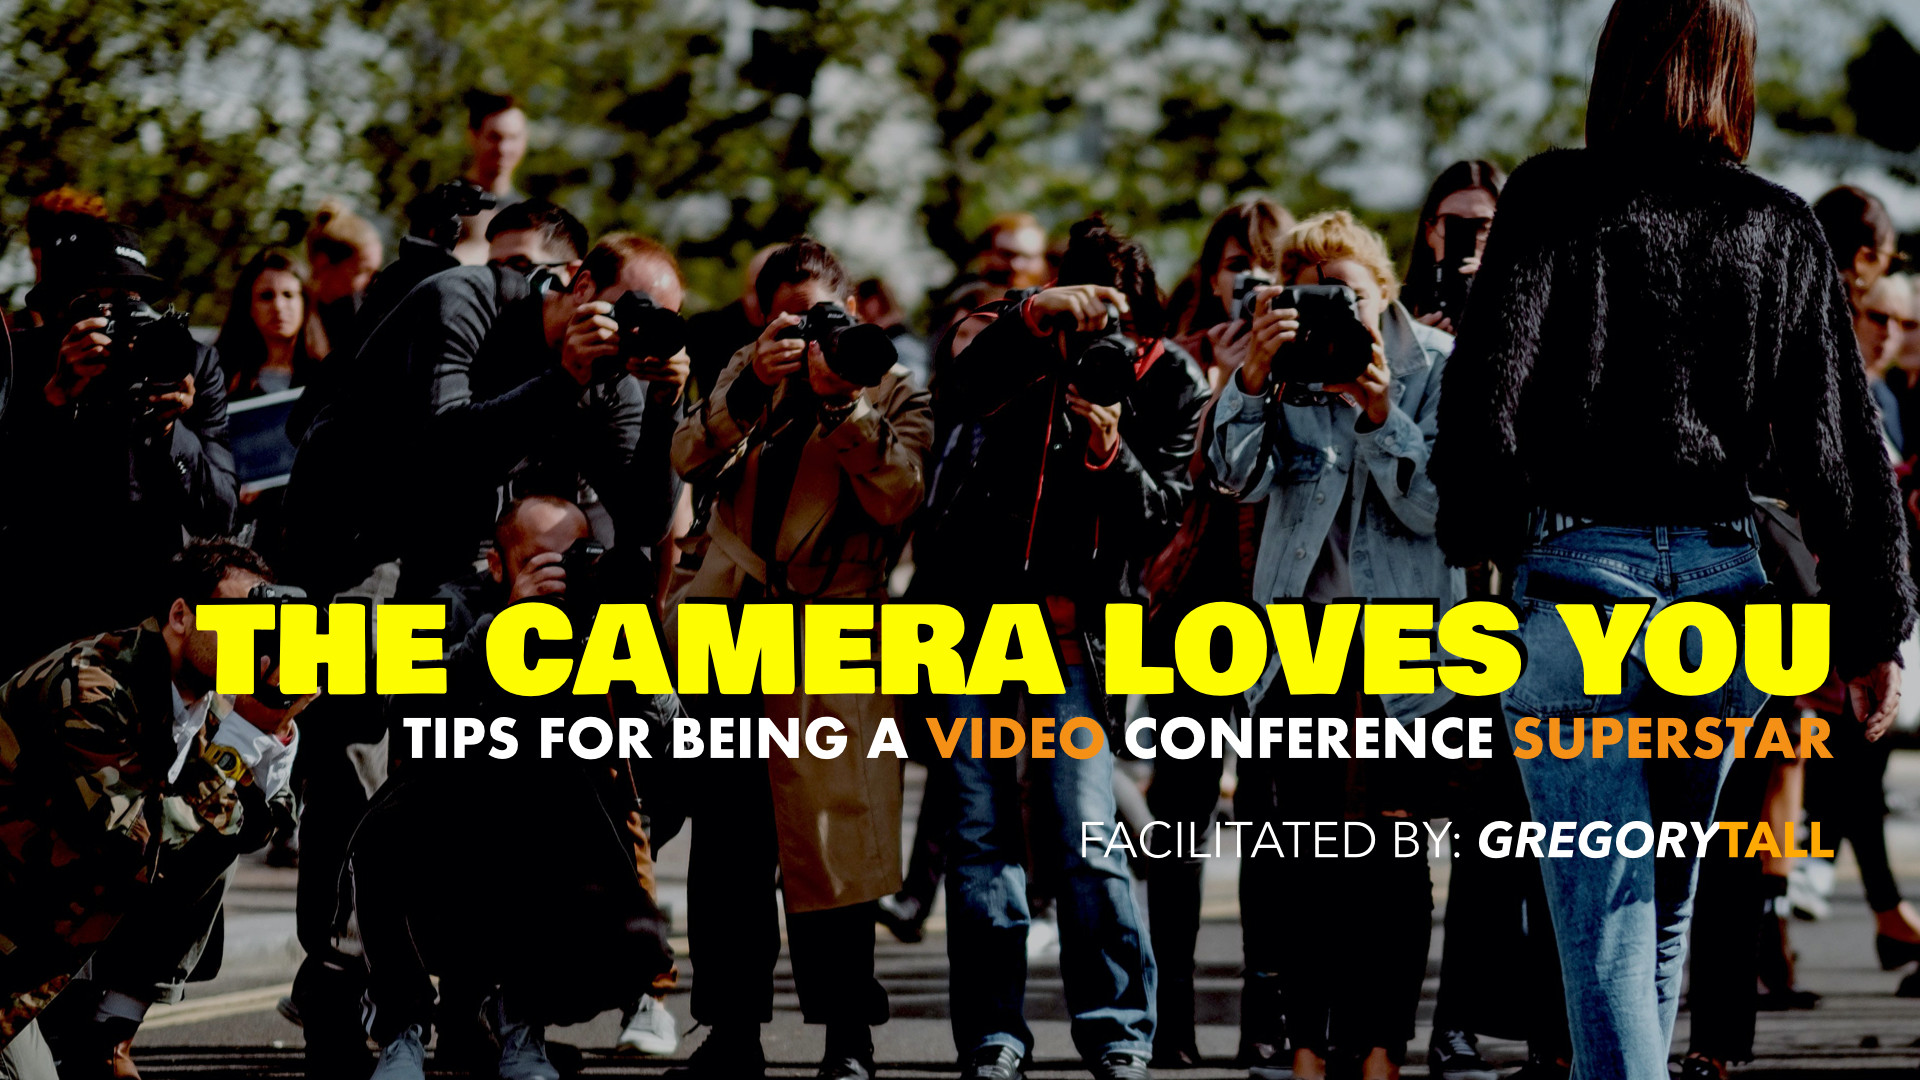 The Camera Loves You